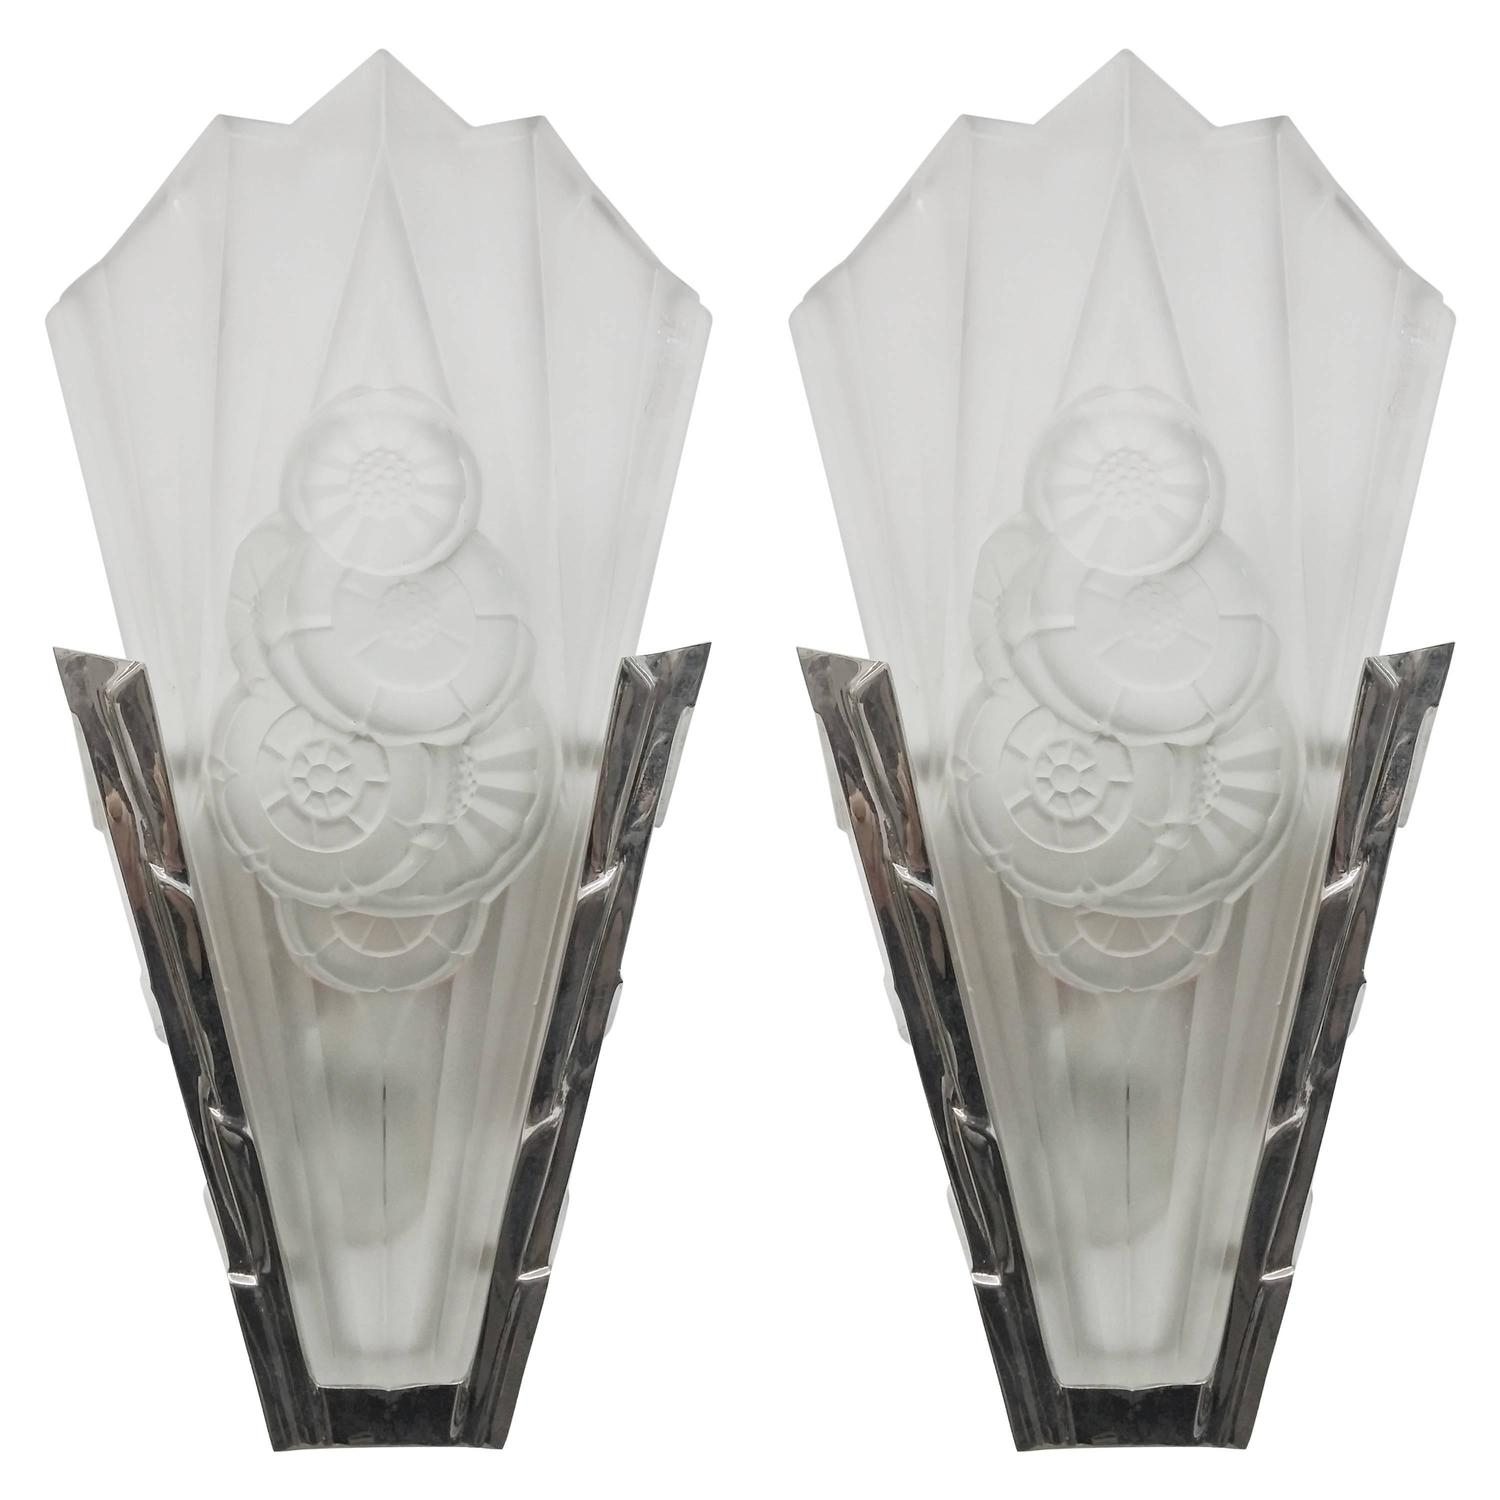 Pair Of French Art Deco Wall Sconces Signeddegue For Sale At 1Stdibs intended for Art Deco Wall Sconces (Image 16 of 20)